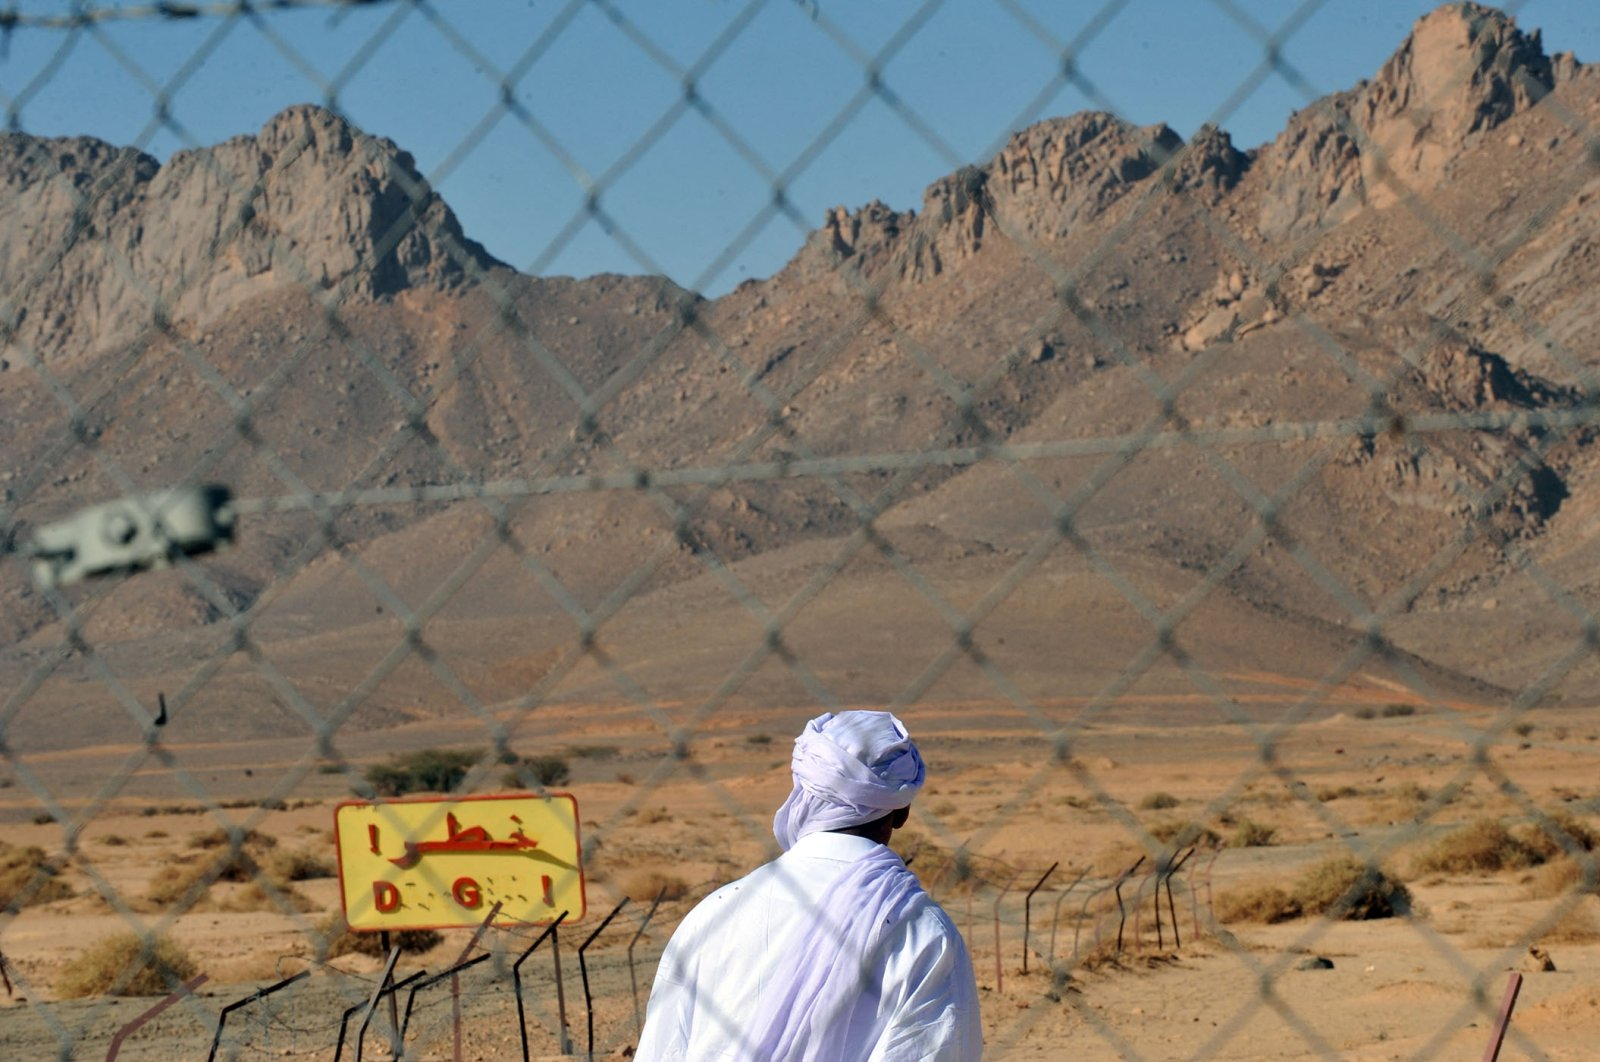 A man walks past a fence at the entrance of the former French nuclear bomb test site of Tena Fila mountain at Ain Ekra in Tamanrasset, 2,000 kilometers (1,242 miles) south of Algiers, Algeria, Feb. 25, 2010. (AFP Photo)